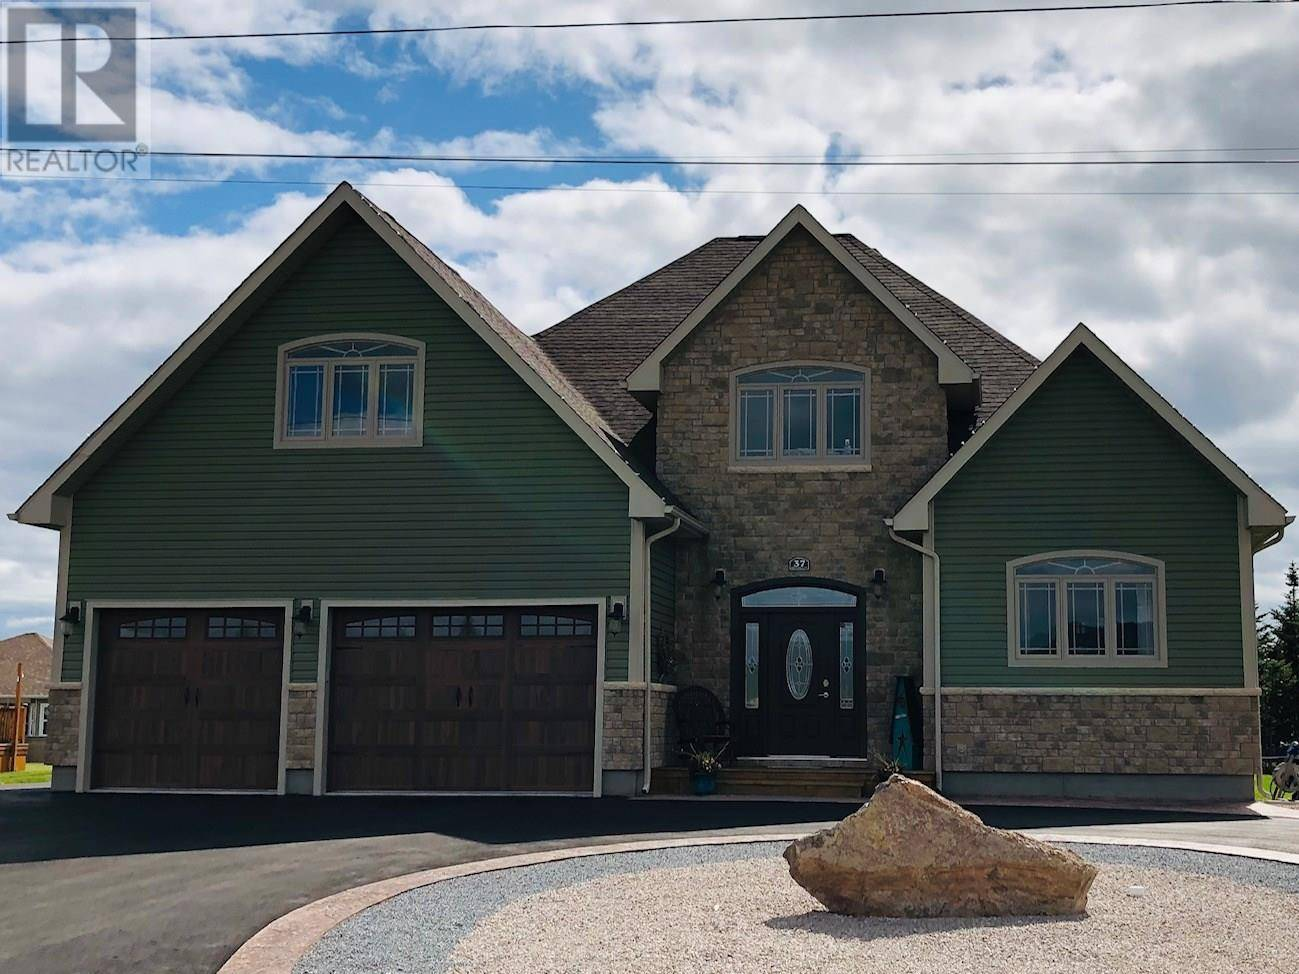 House for sale at 37 Orchard Ln Kippens Newfoundland - MLS: 1213091